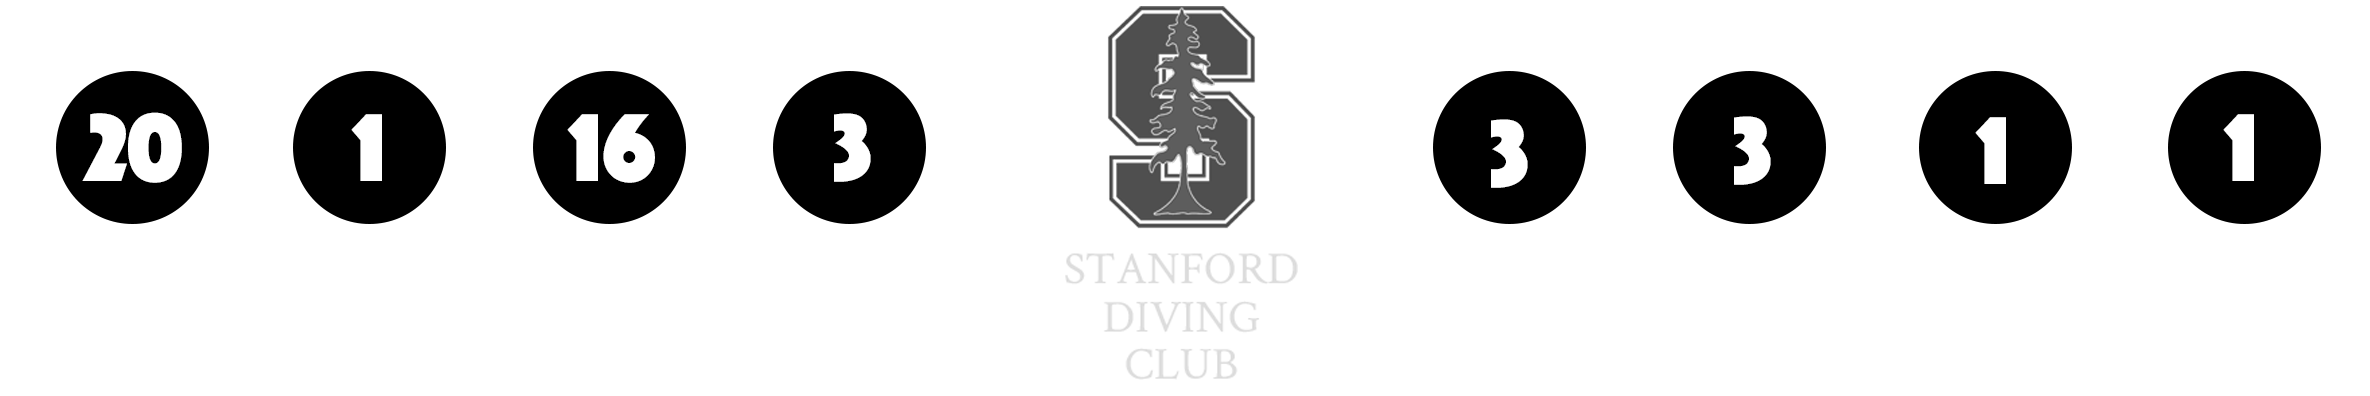 stanford-logo-banners